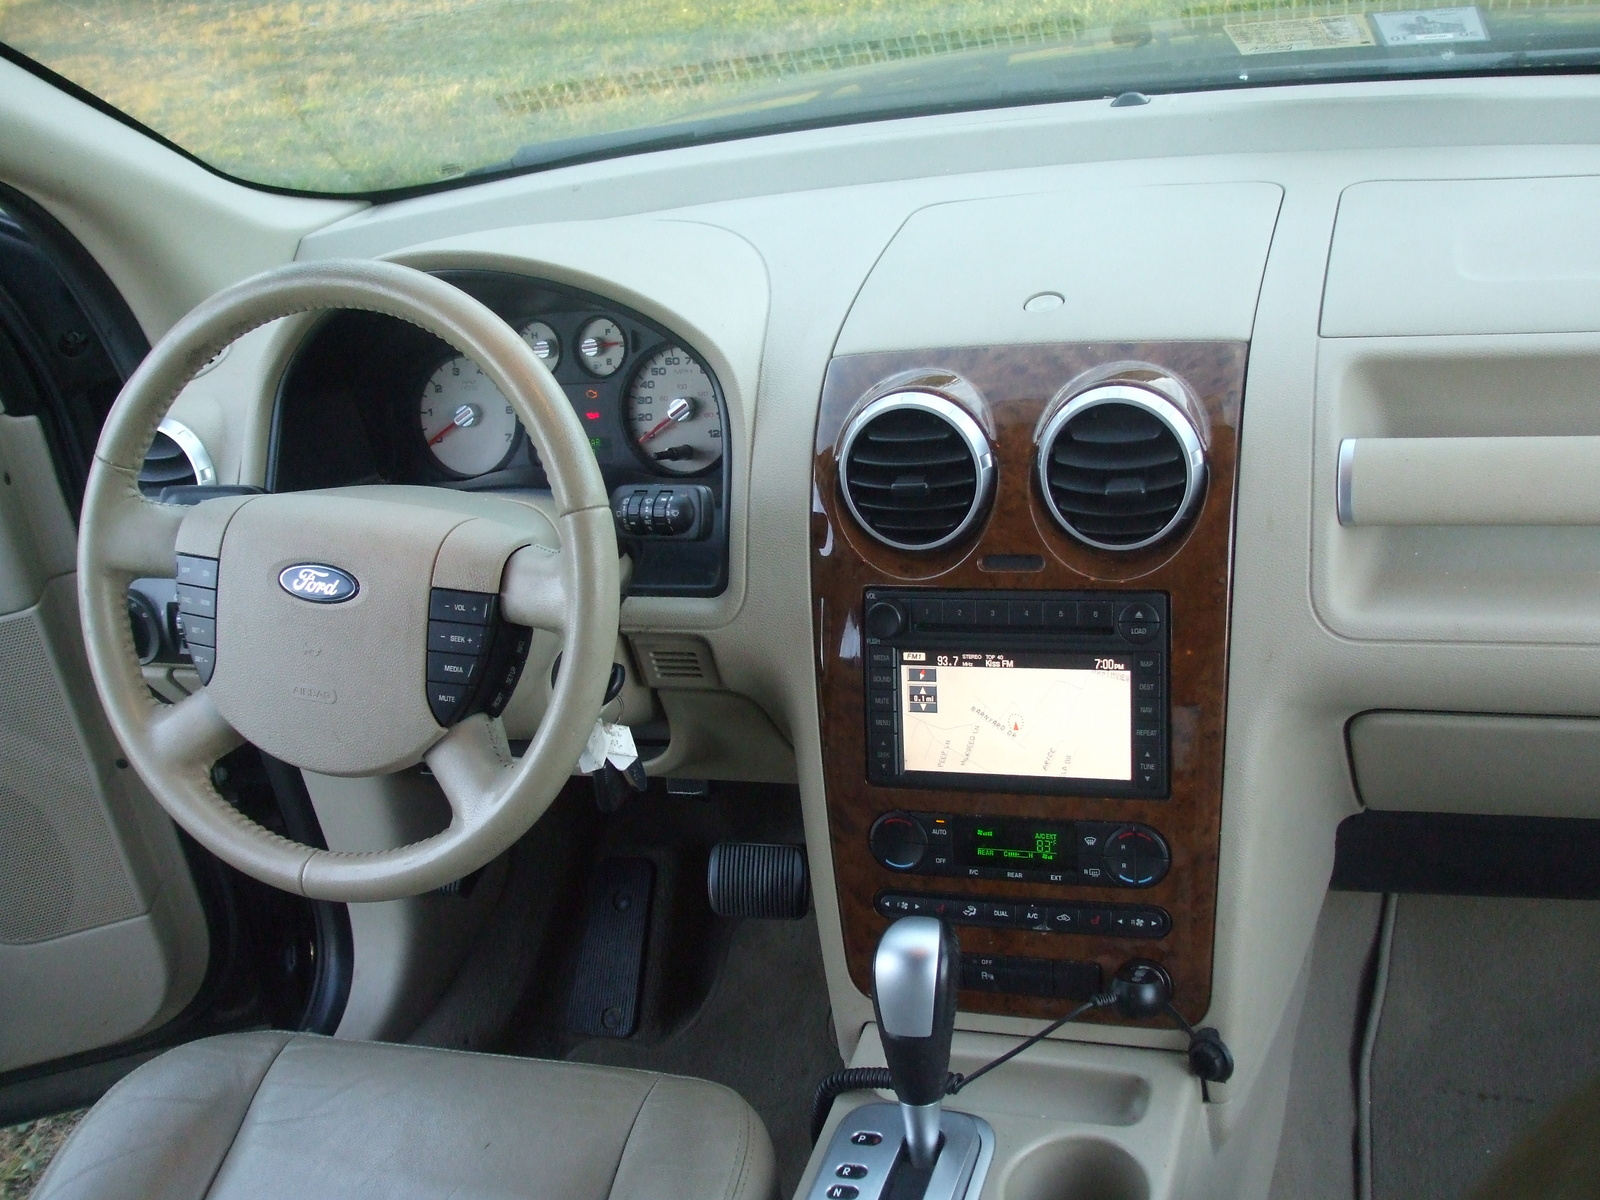 2007 Ford Freestyle - Interior Pictures - Picture of 2007 Ford ...